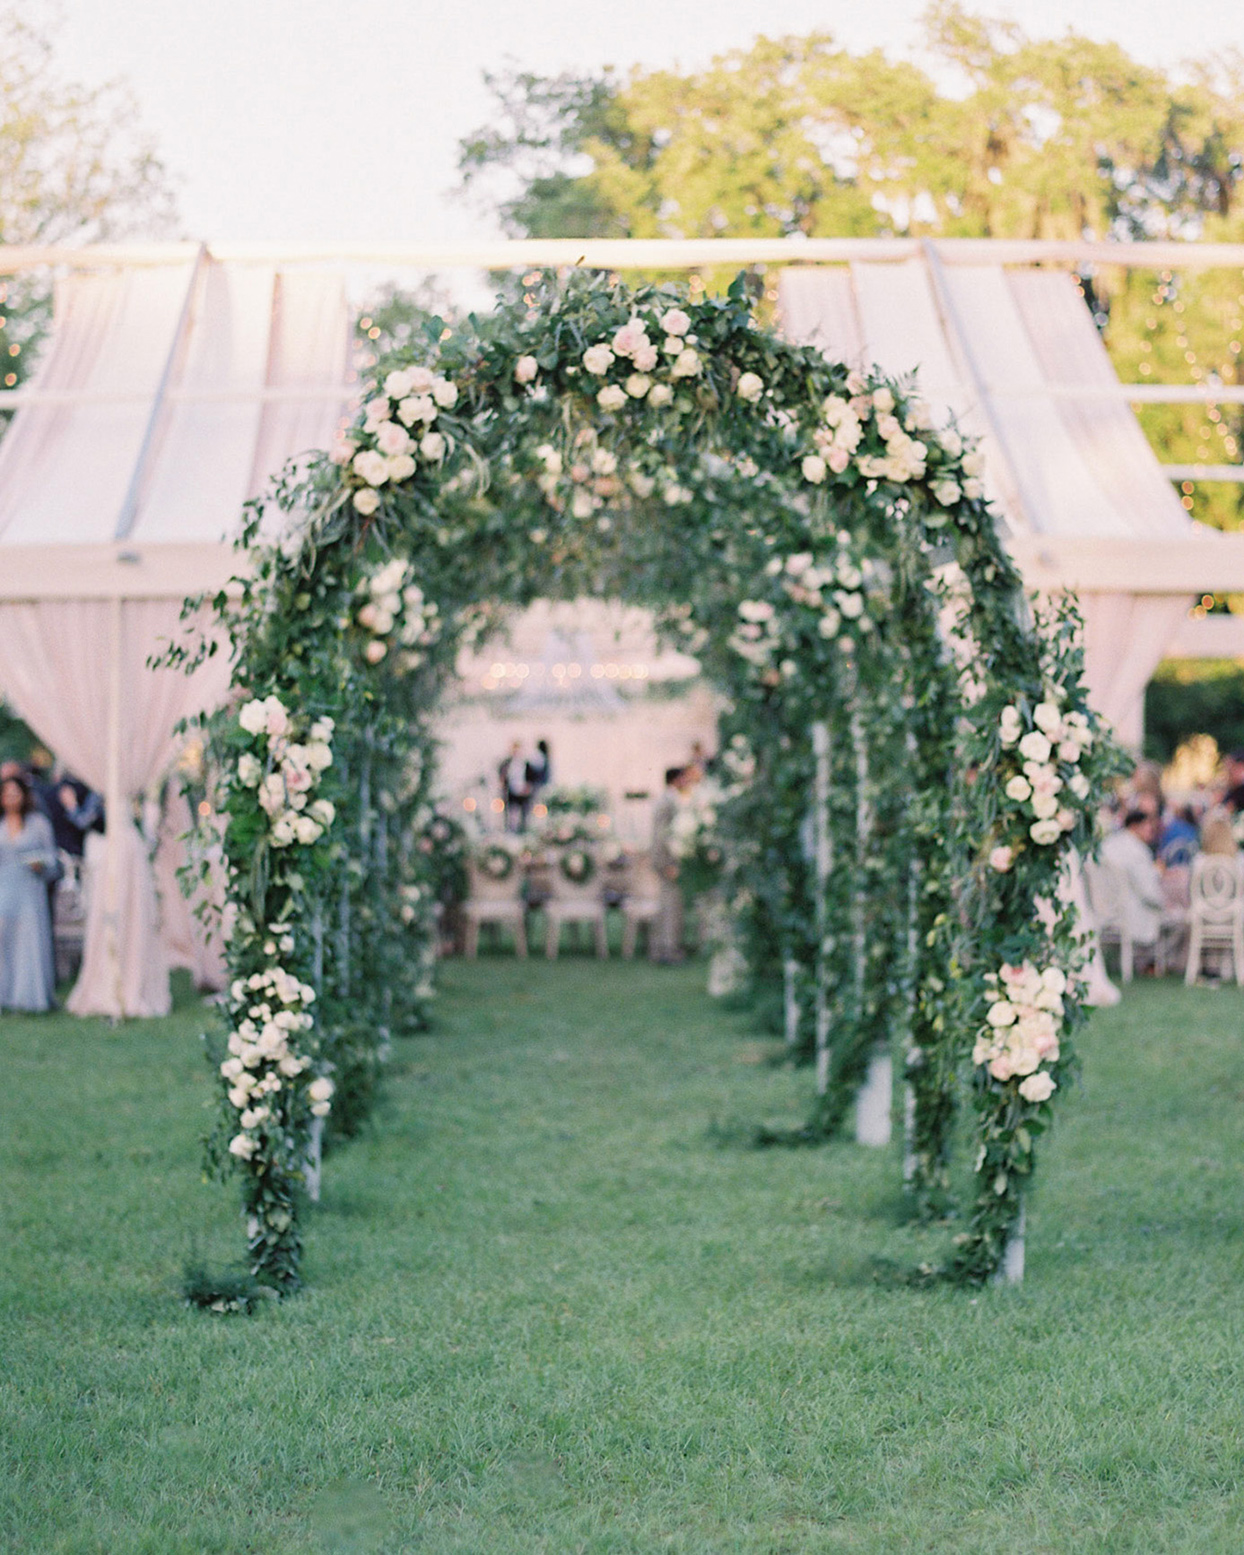 chelsea john wedding reception greenery and floral arches